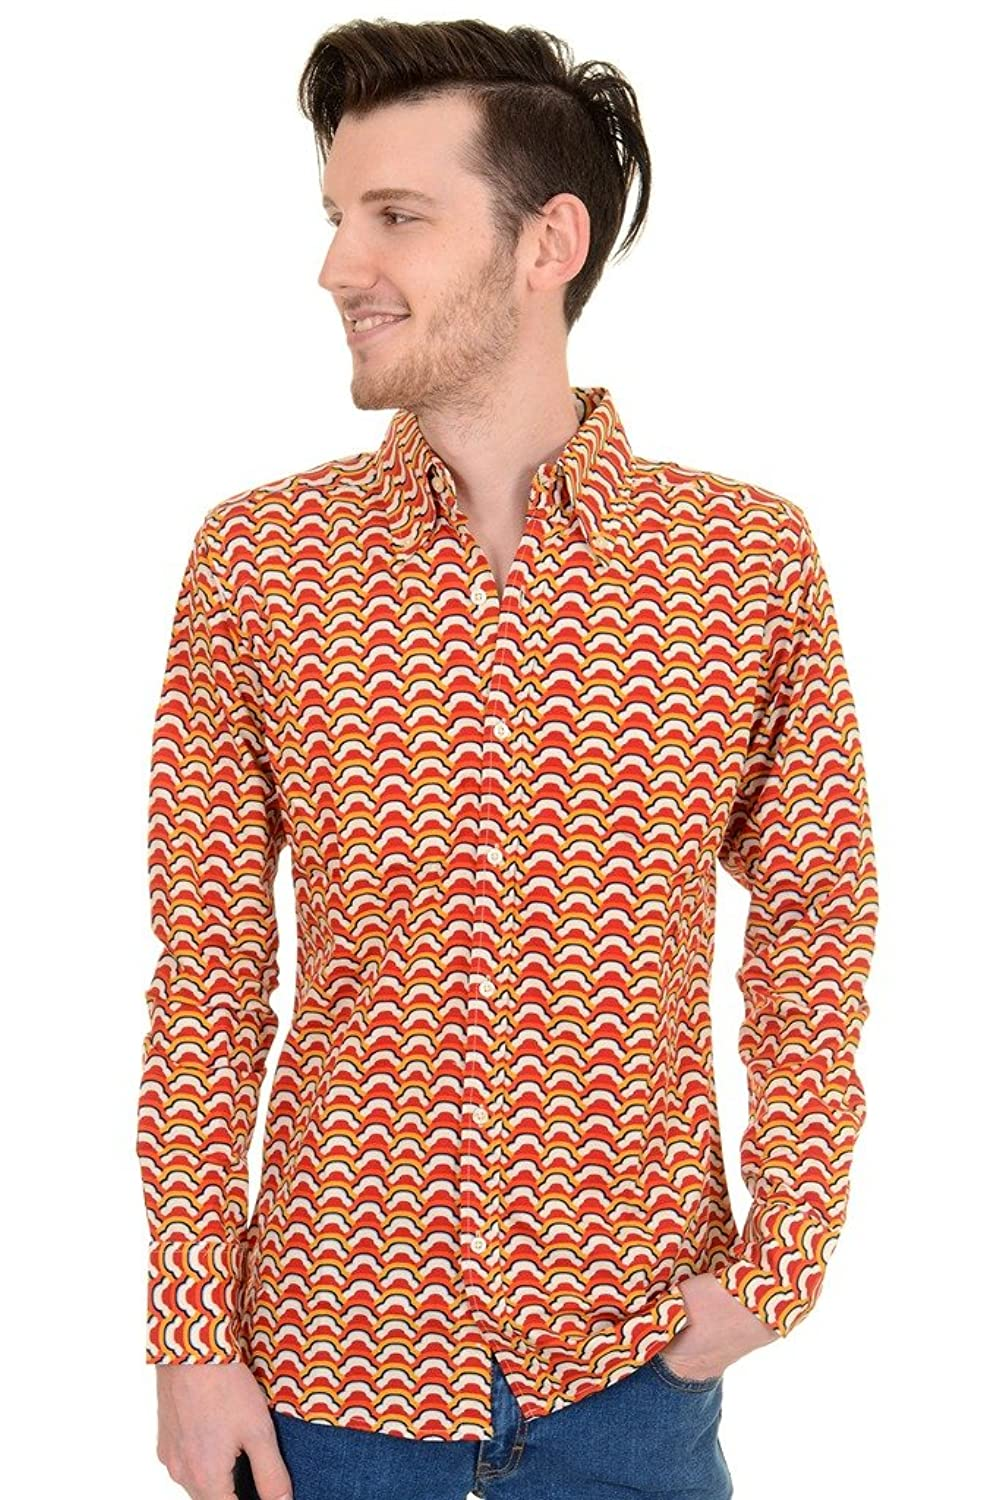 1960s Men's Clothing, 70s Men's Fashion Mens Run & Fly 70s Retro Mod Psychedelic Retro Clouds Printed Shirt $34.95 AT vintagedancer.com